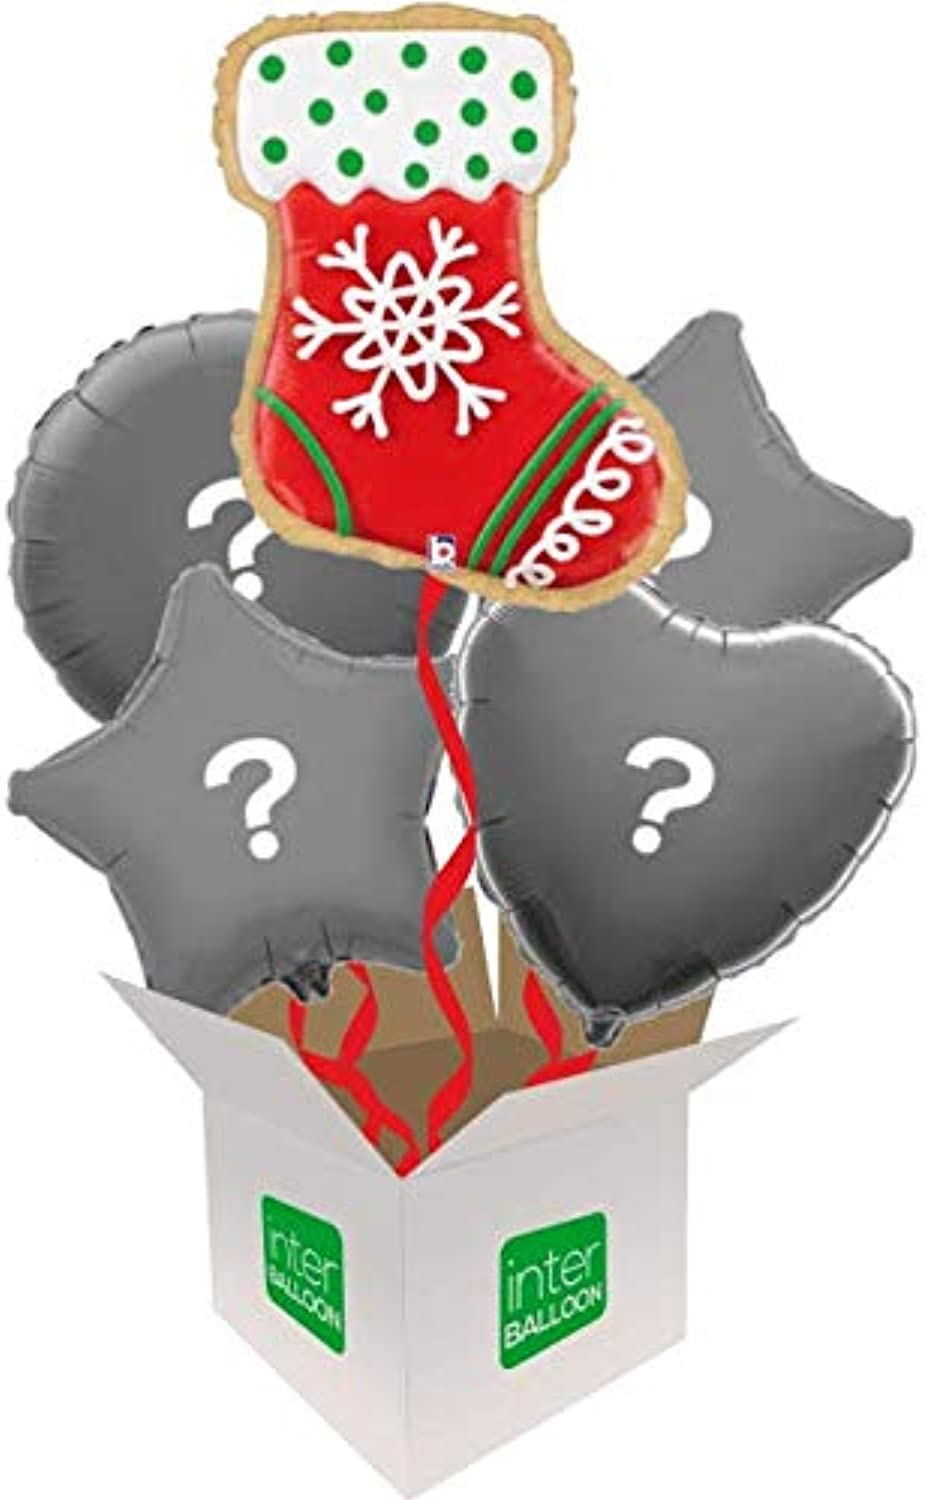 InterBalloon Helium Inflated 27  Stocking Cookie Balloon Delivered in a Box with 4 Extra Balloons of your choice